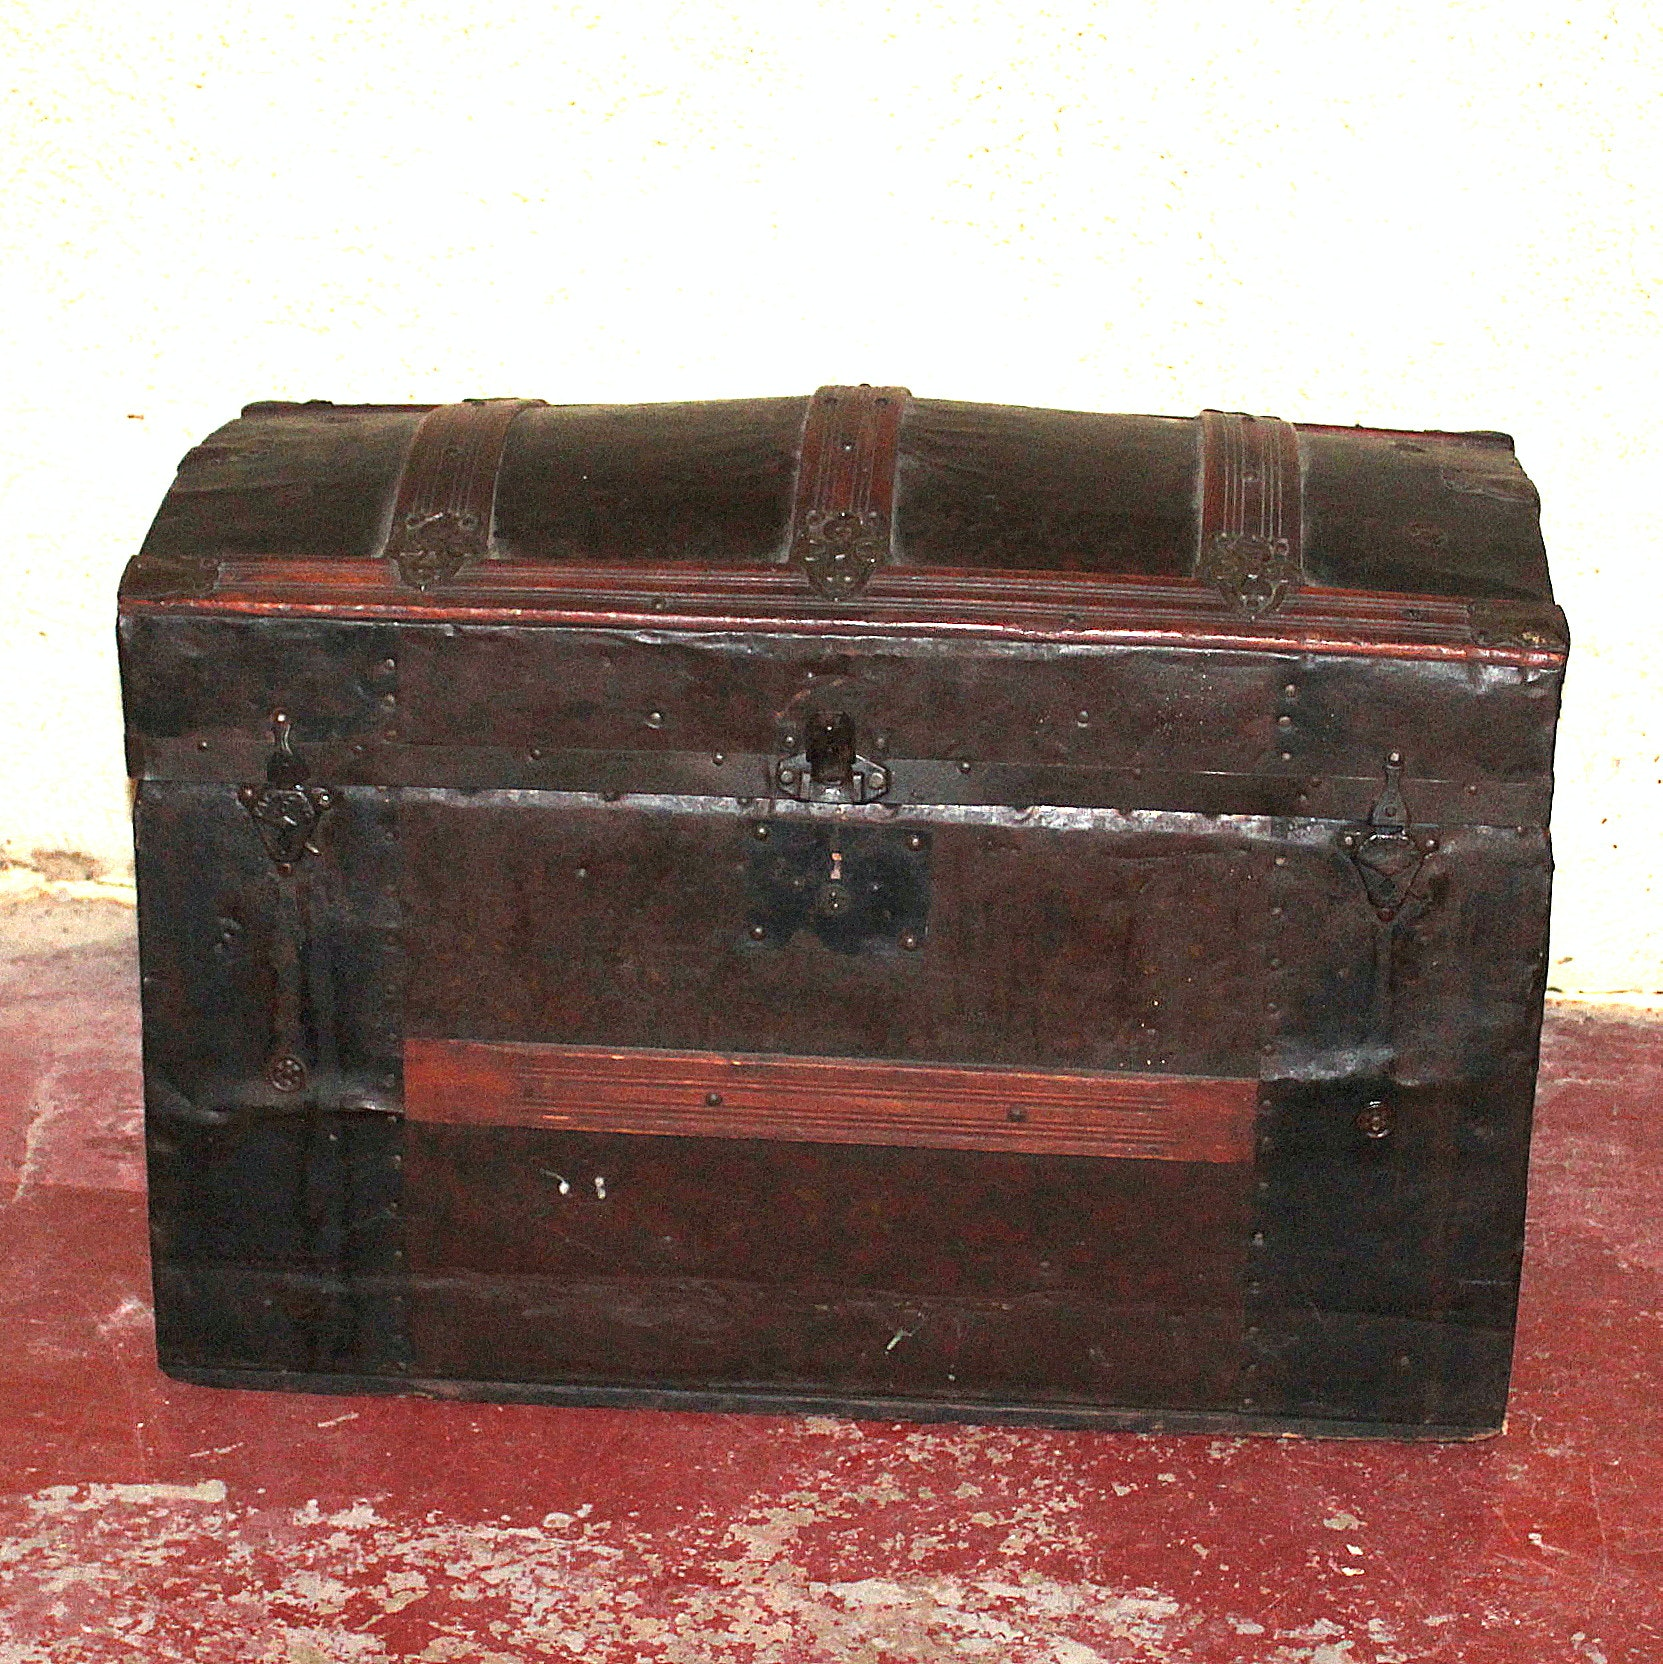 Metal-Covered Antique Trunk